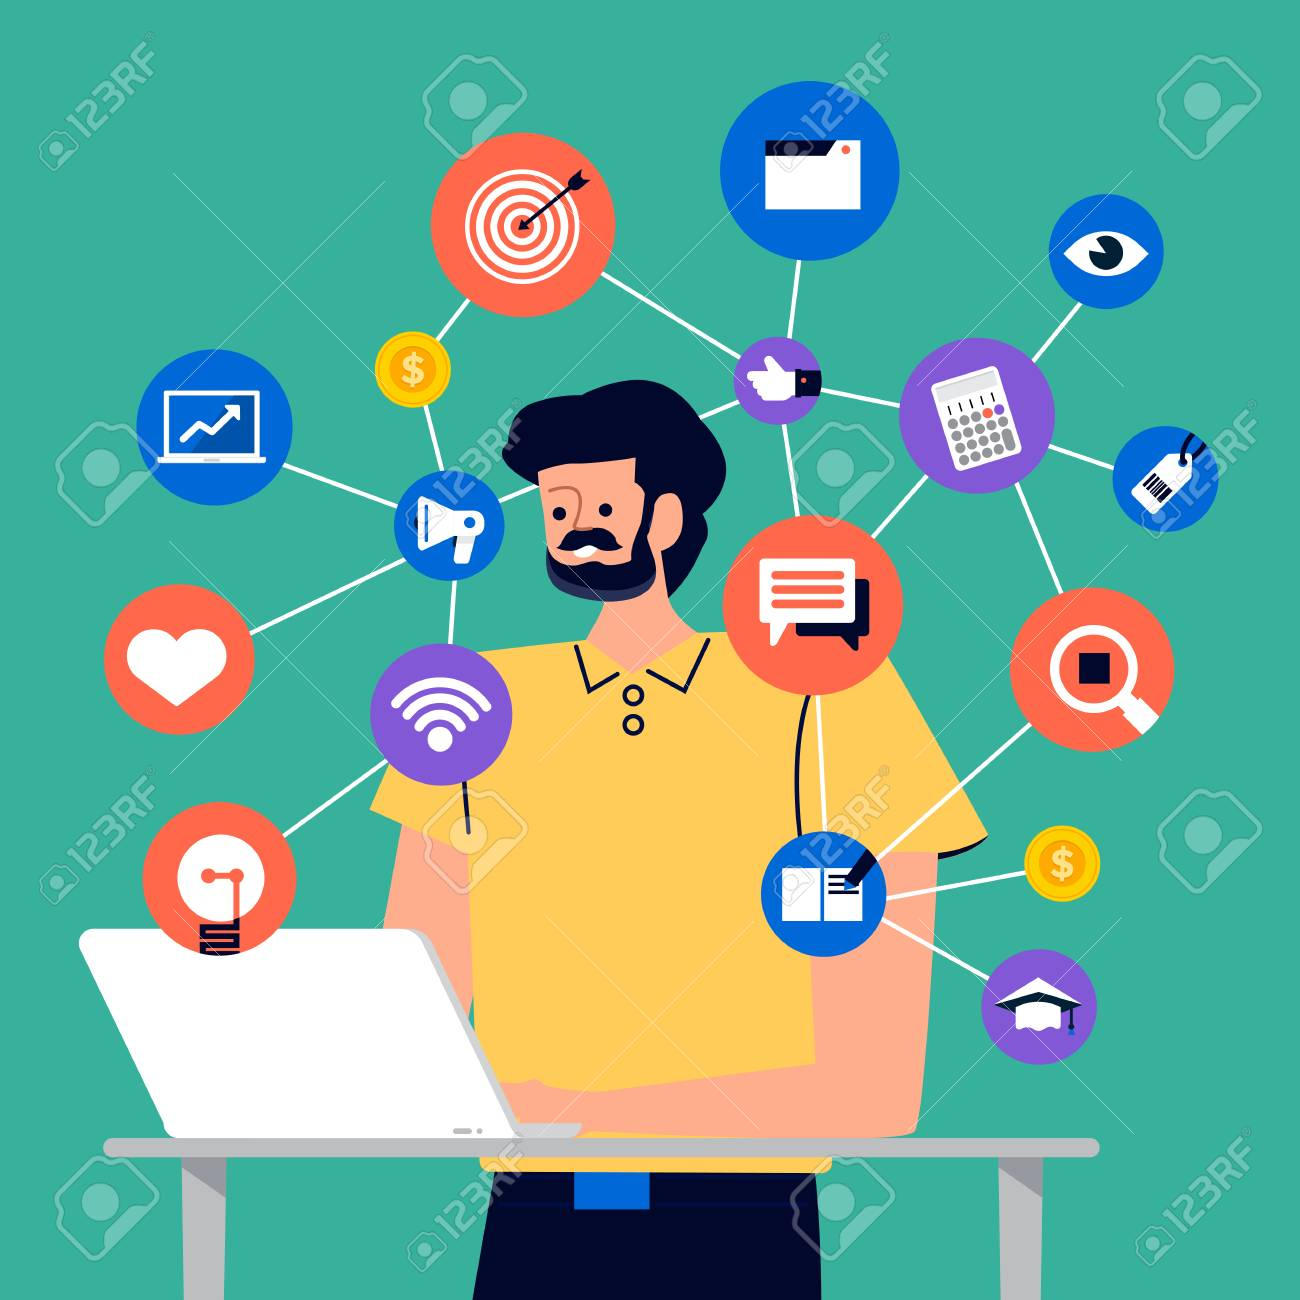 Set of cartoon peoples using internet device like smartphone and laptop with digital lifestyle action. Vector illustrations. - 125935570